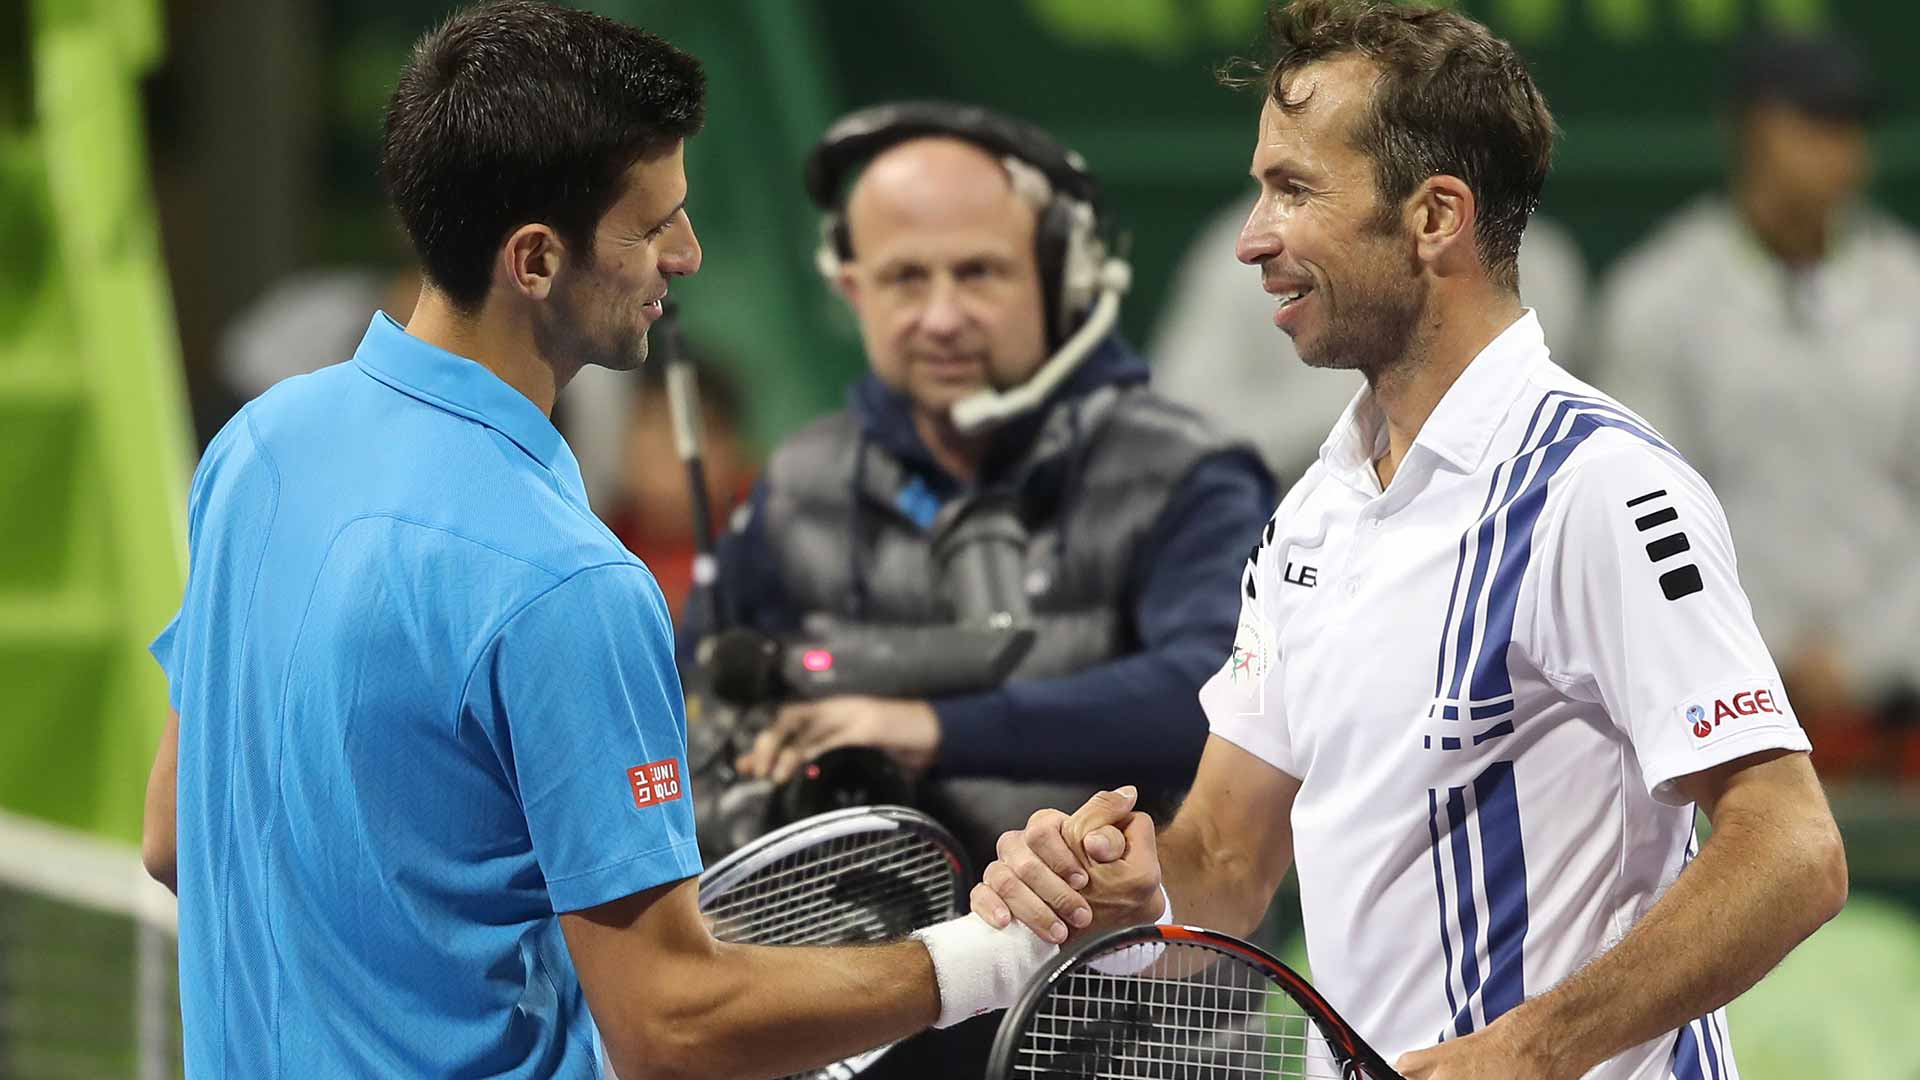 Djokovic, Stepanek